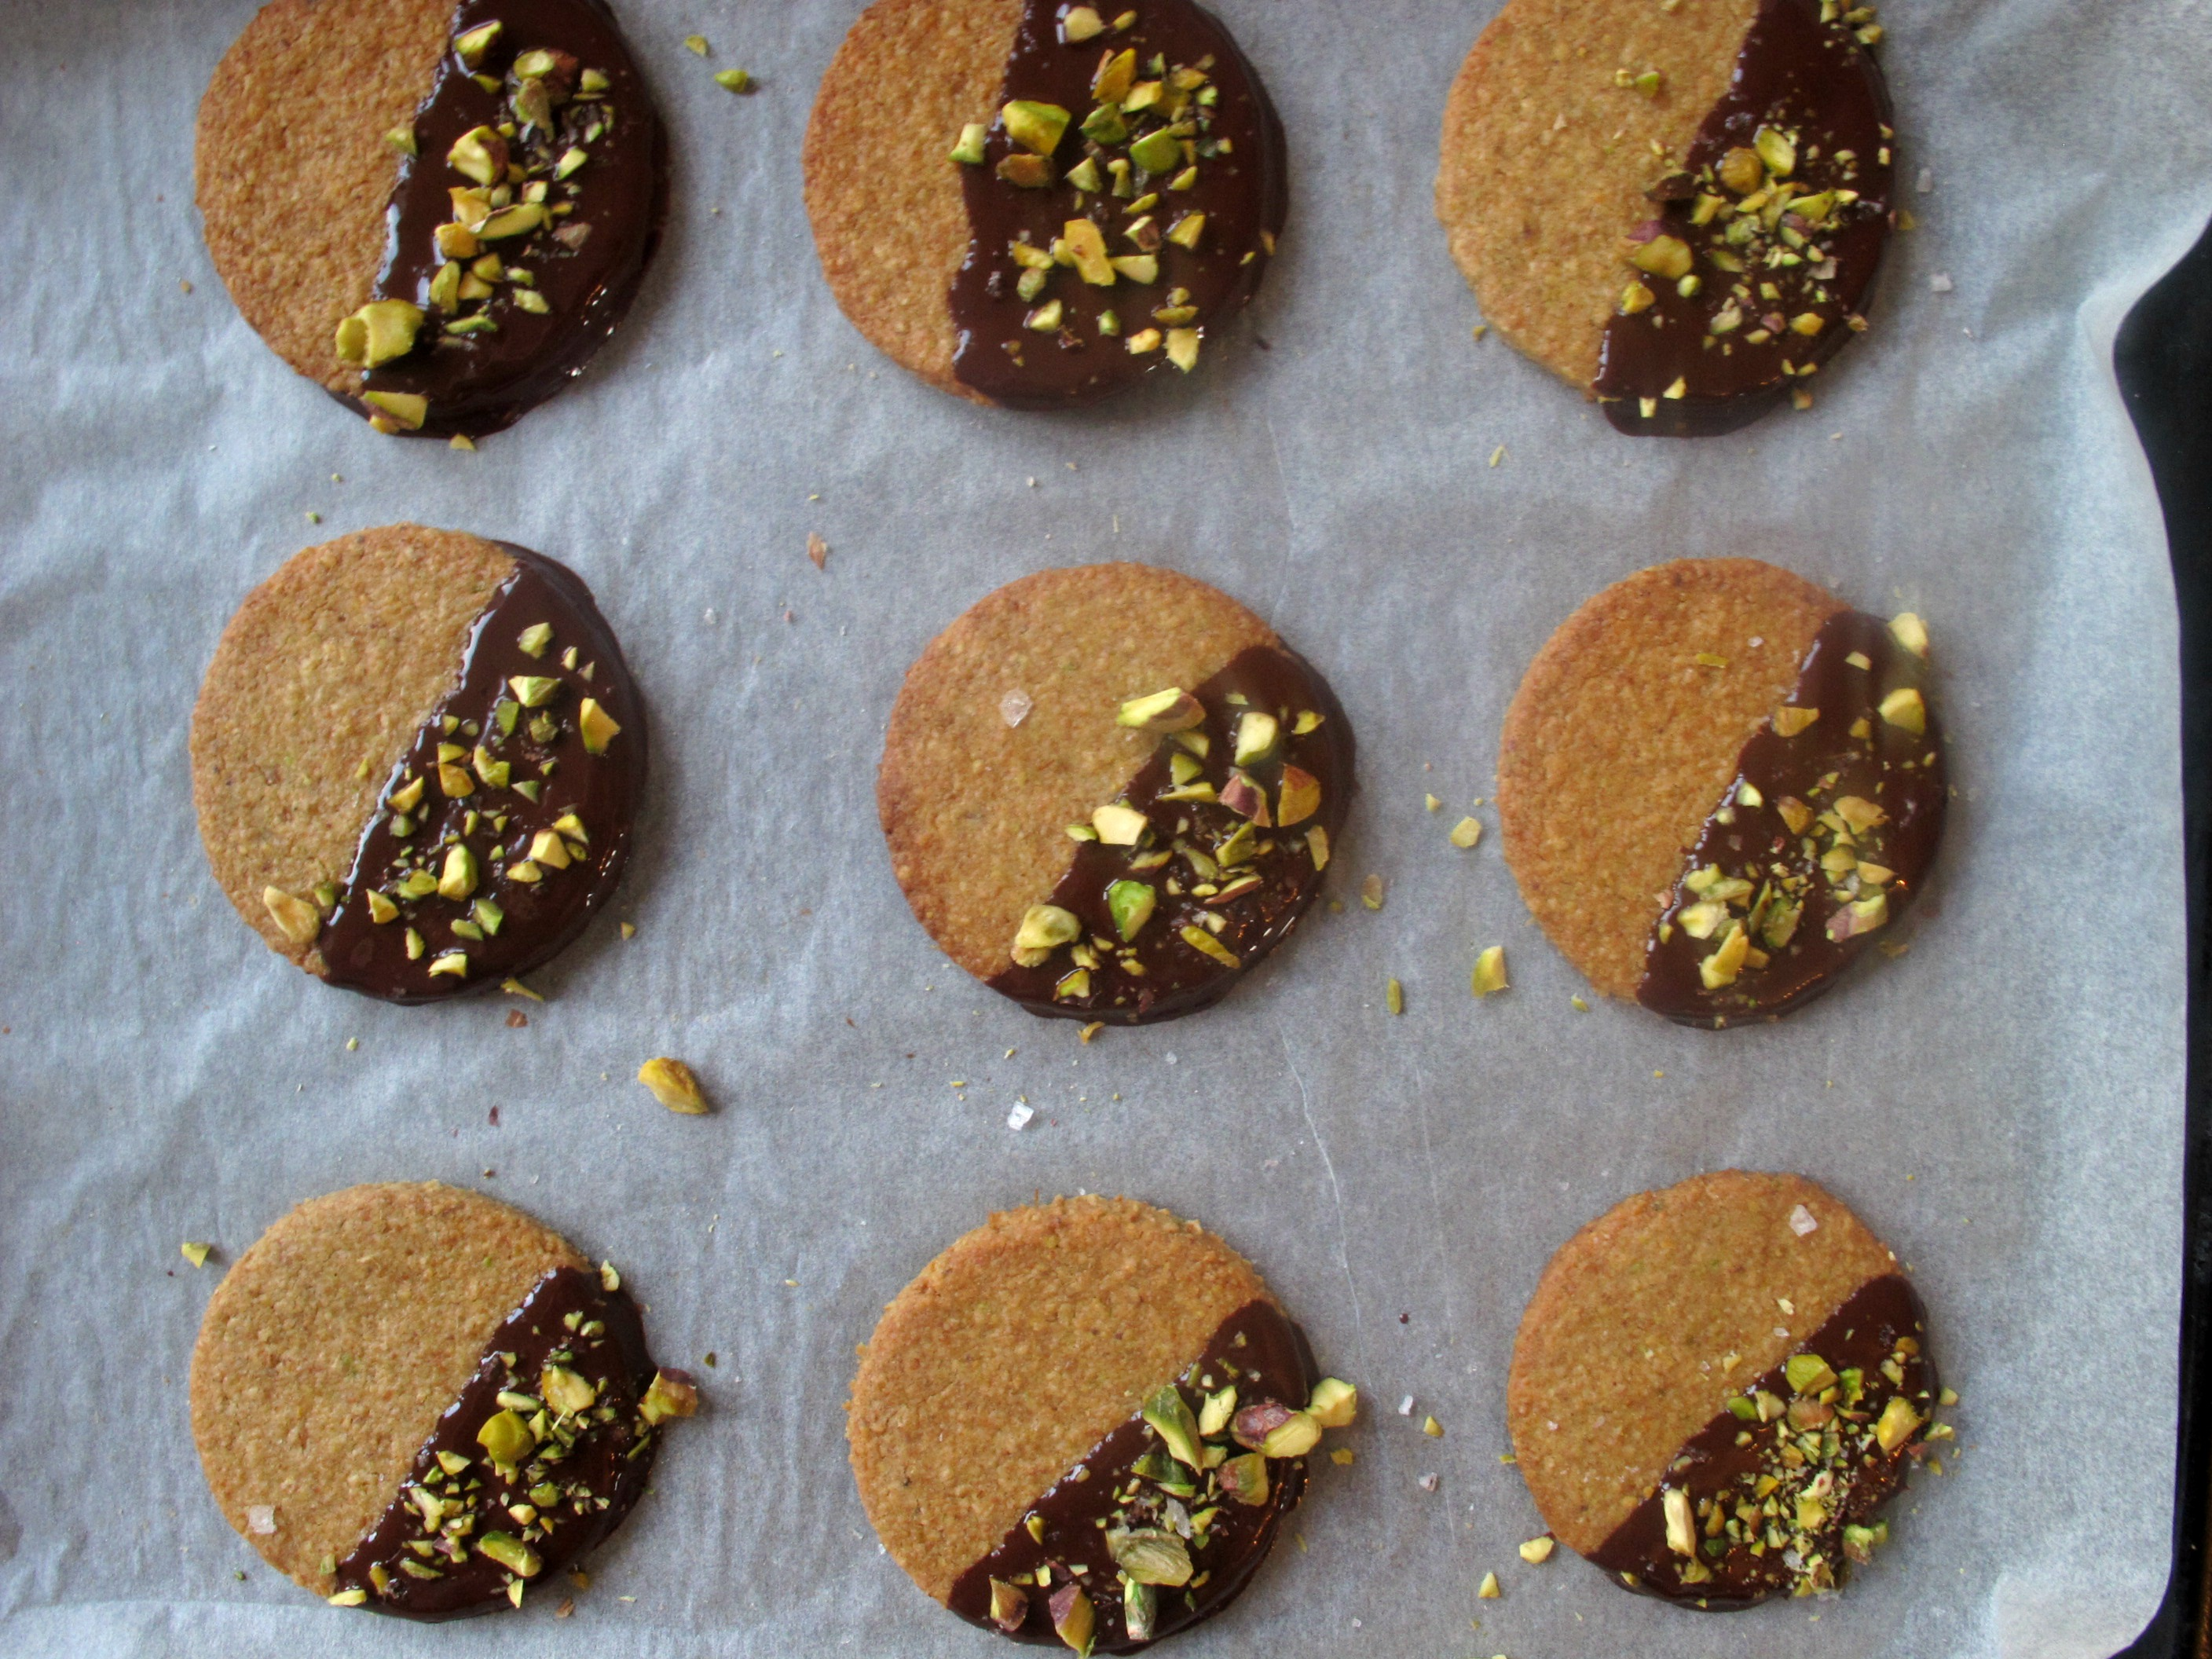 Salted Pistachio and Dark Chocolate Digestives